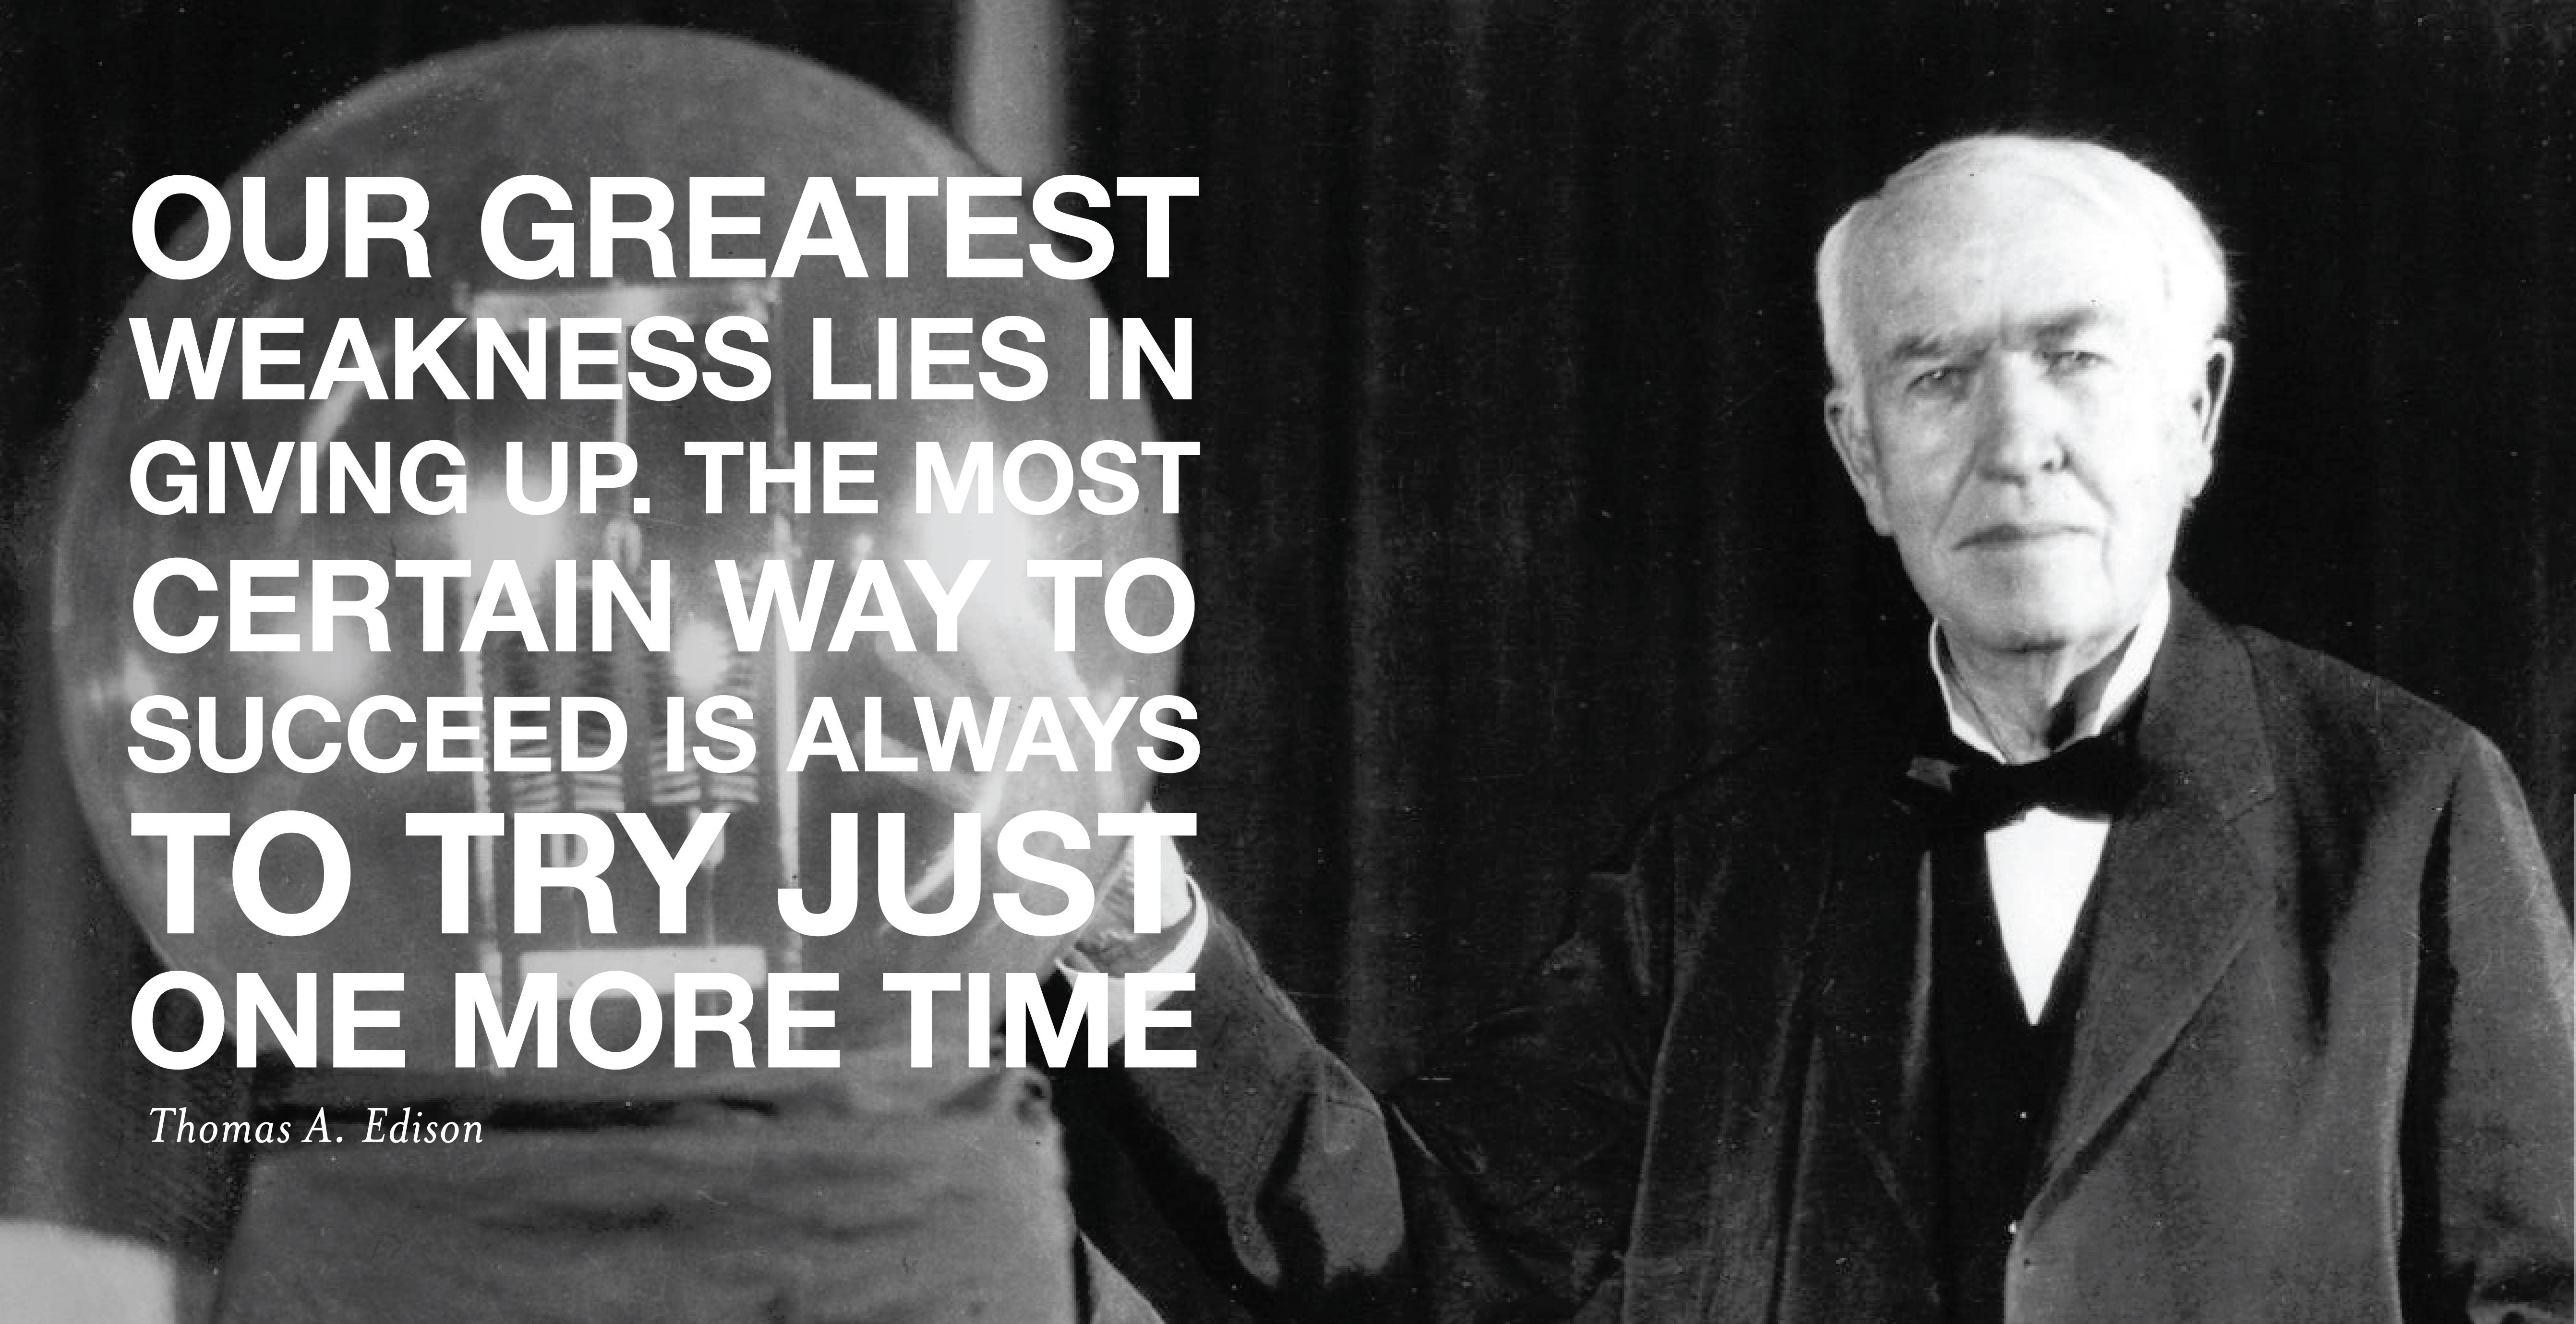 [Image] Try Just one more time